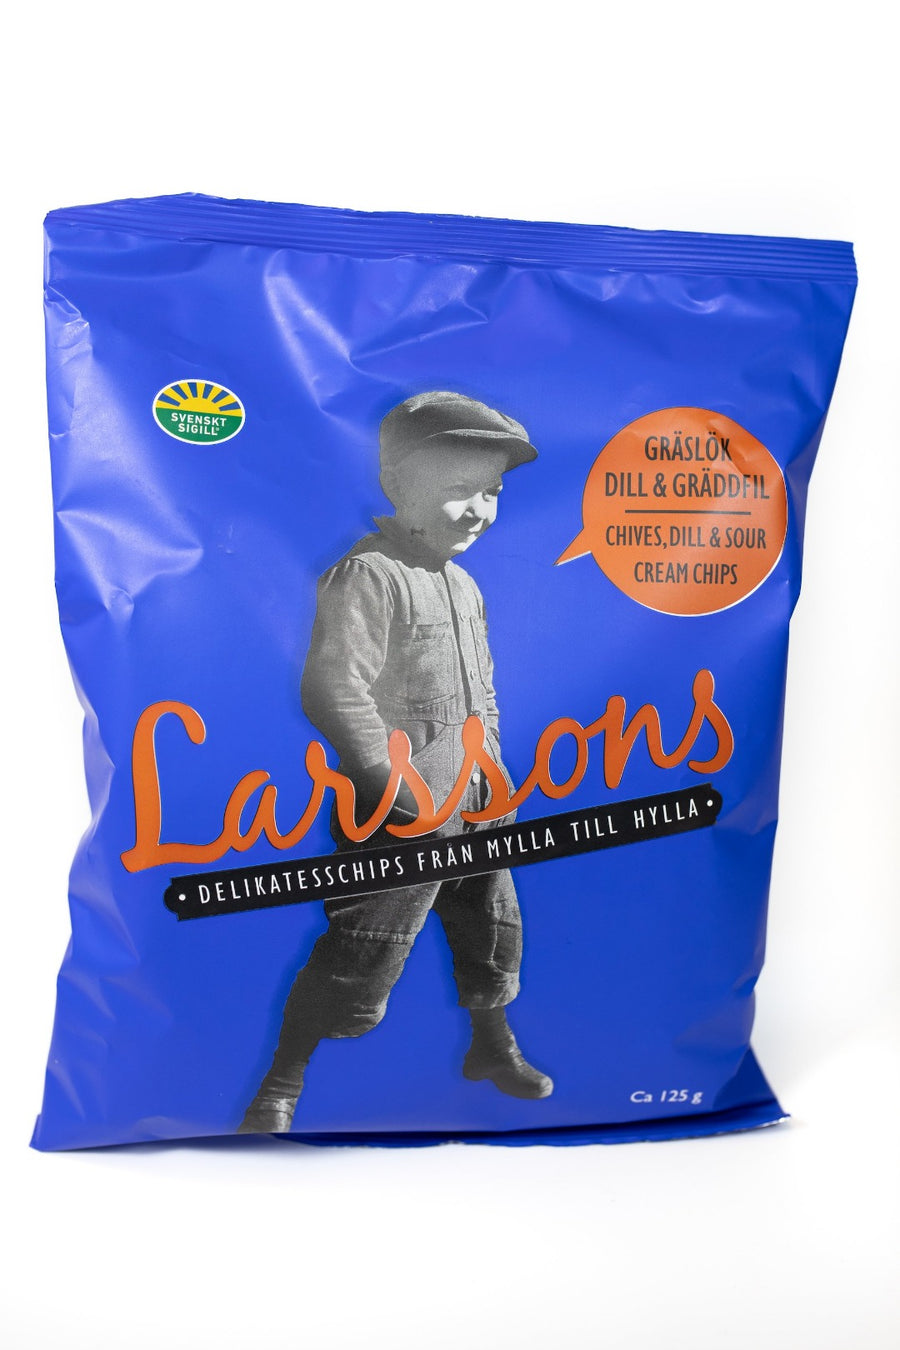 Larssons Swedish Potato Chips